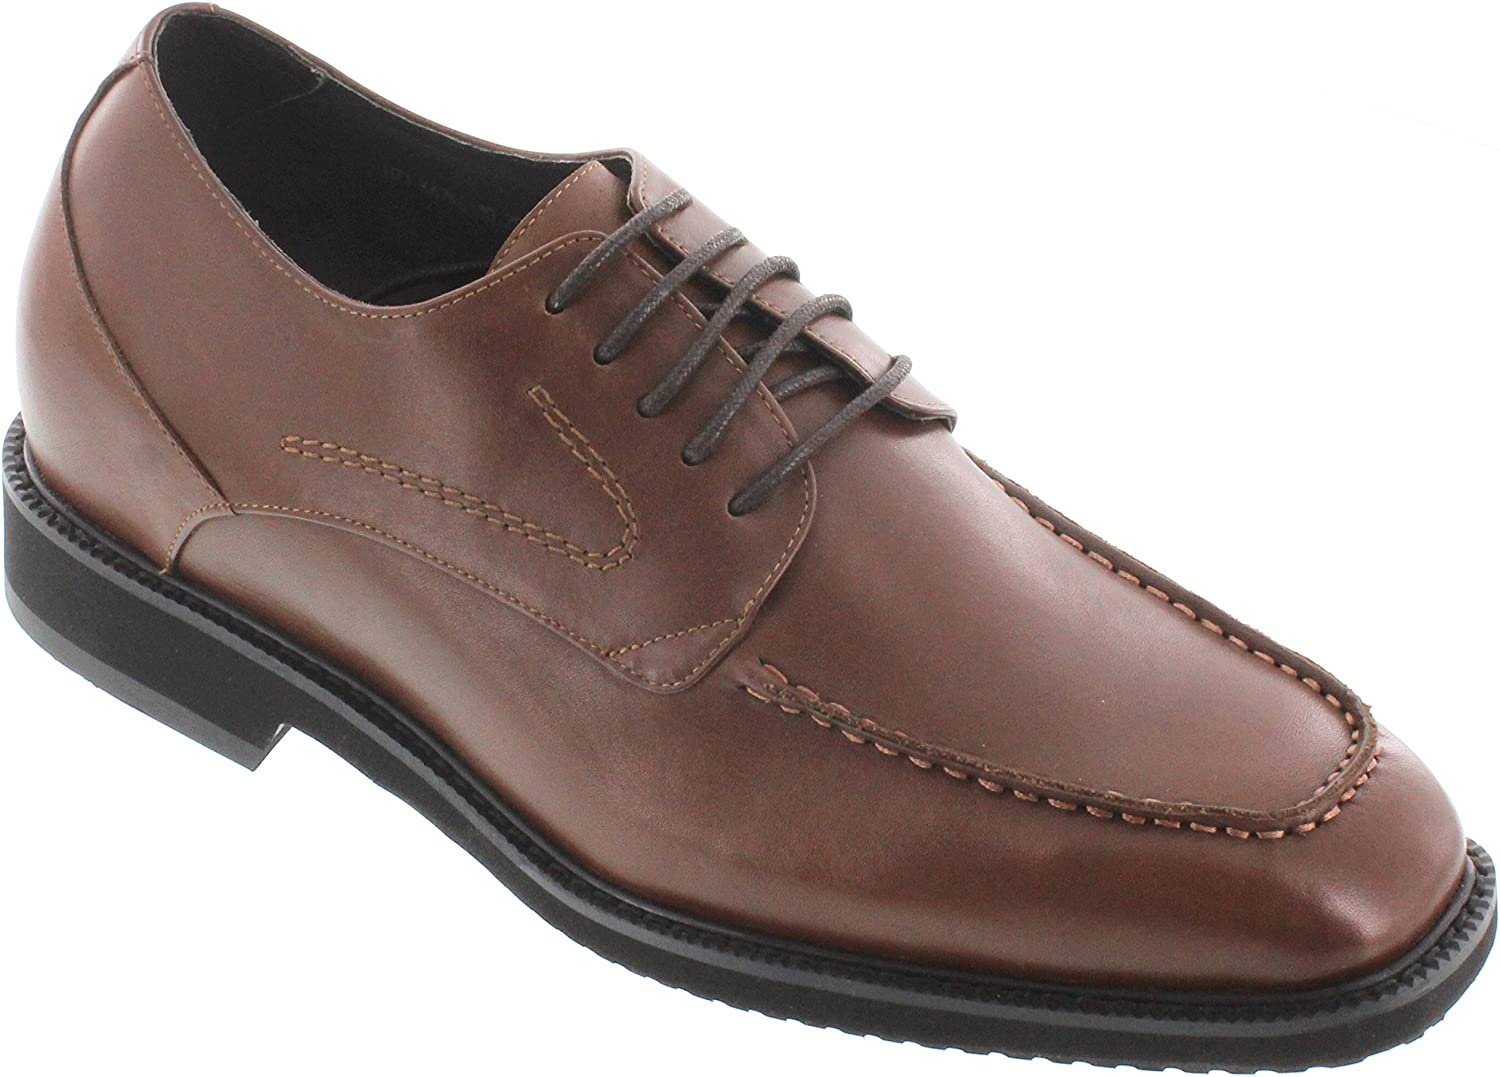 TOTO Men's Invisible Height Increasing Elevator Shoes - Dark Brown Leather Lace-up Formal Oxfords - 2.8 Inches Taller - X67011